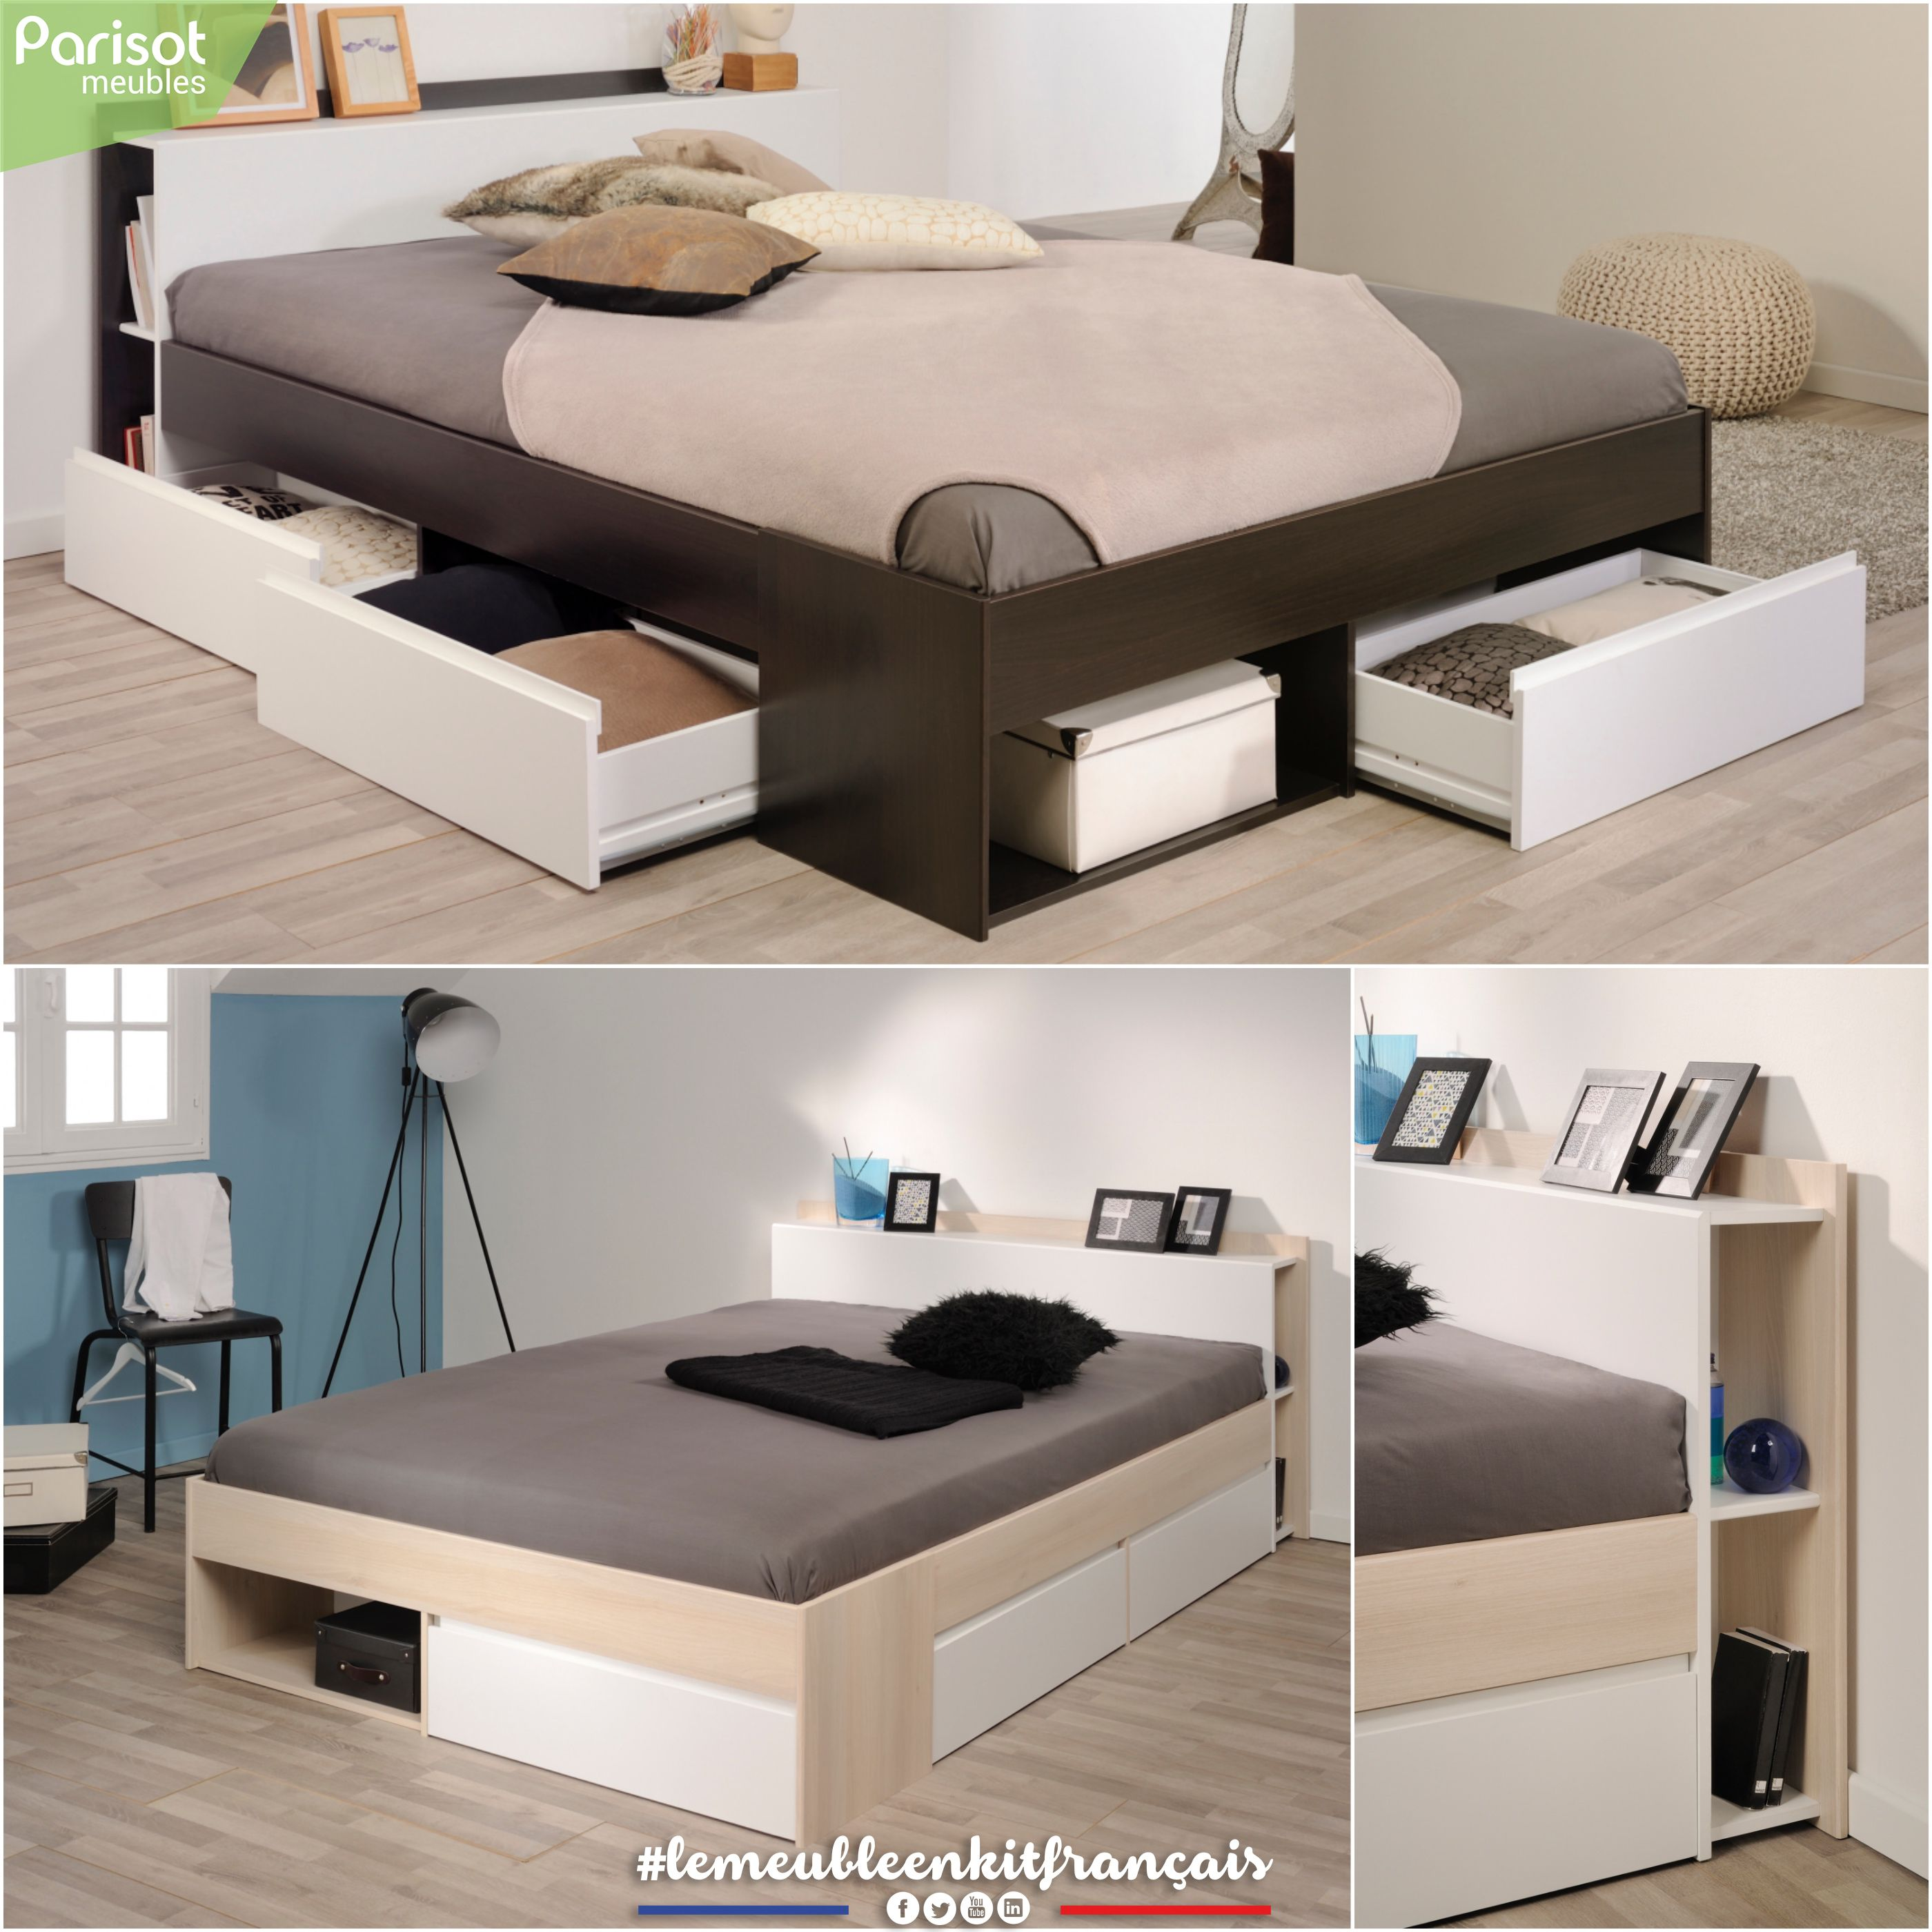 Most By Parisot Meubles Two Different Designs For The Bed Will Fit